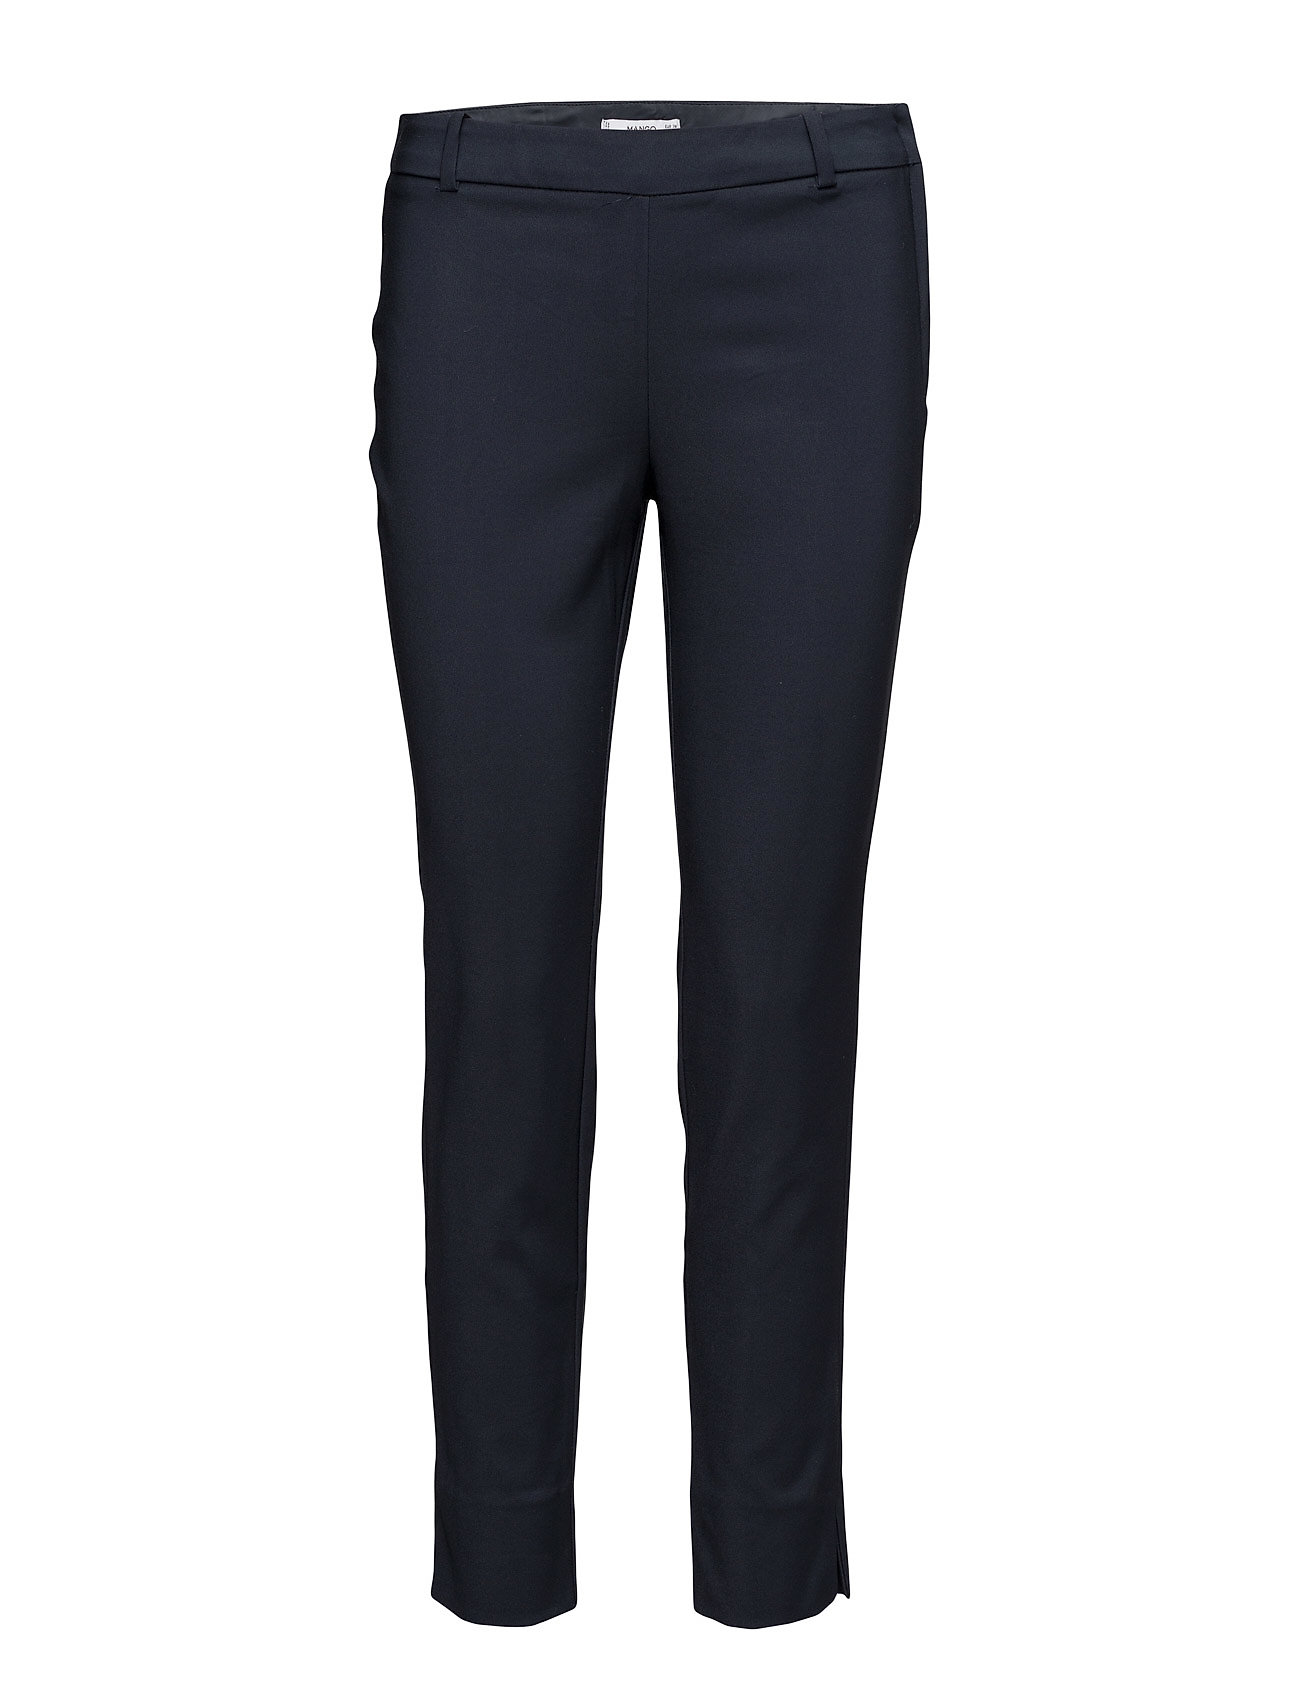 Crop Slim-Fit Trousers Mango Bukser til Damer i Navy blå